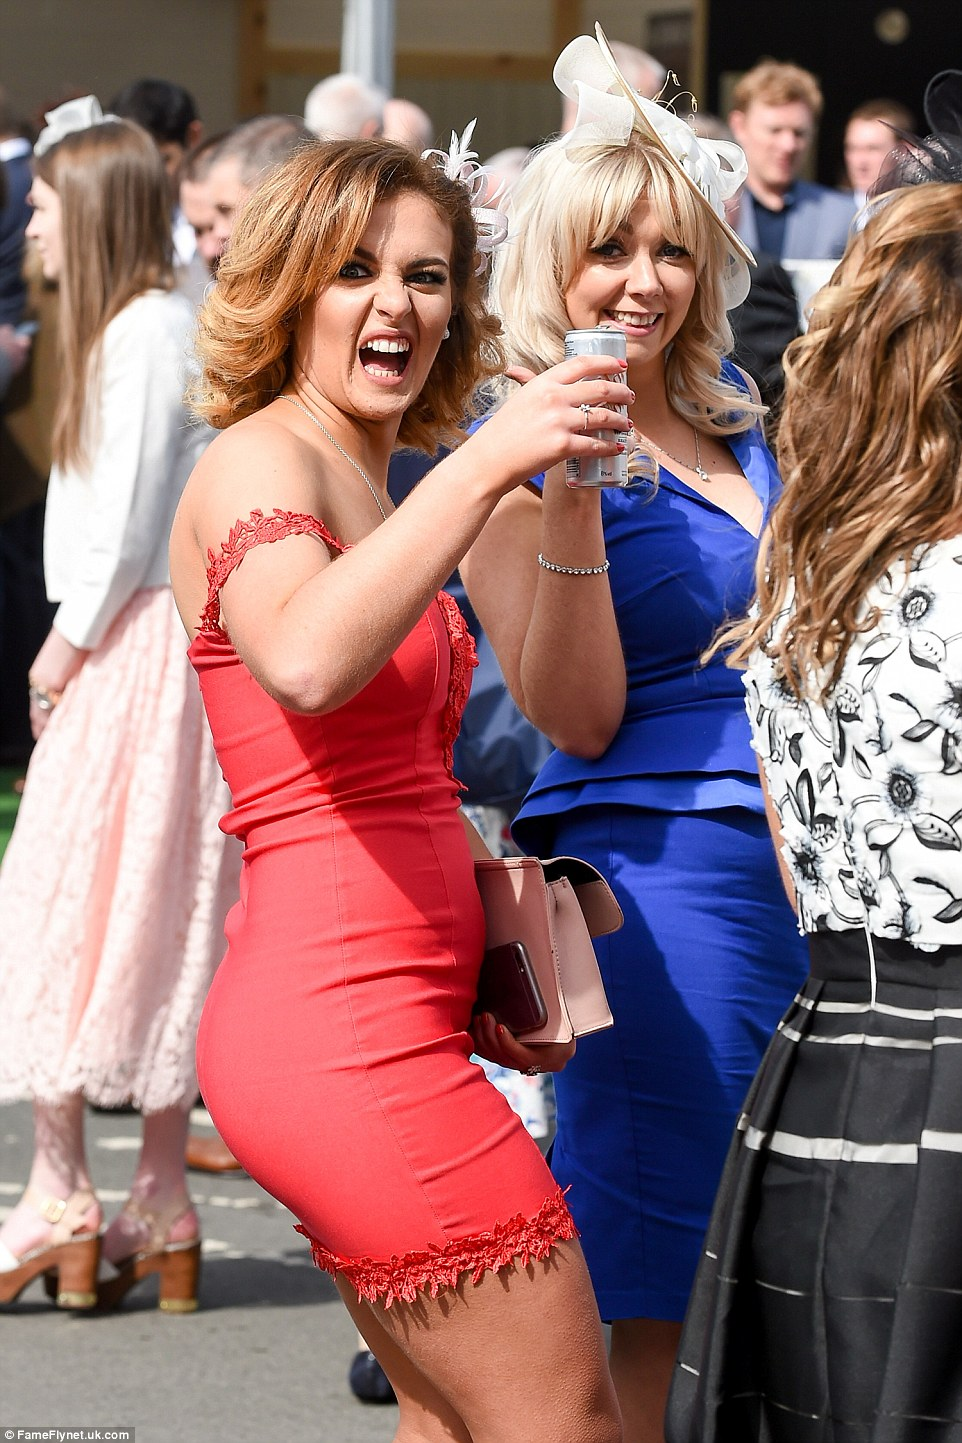 Raising a toast: There was a lively atmosphere at the course as revellers celebrated a rare break in the clouds